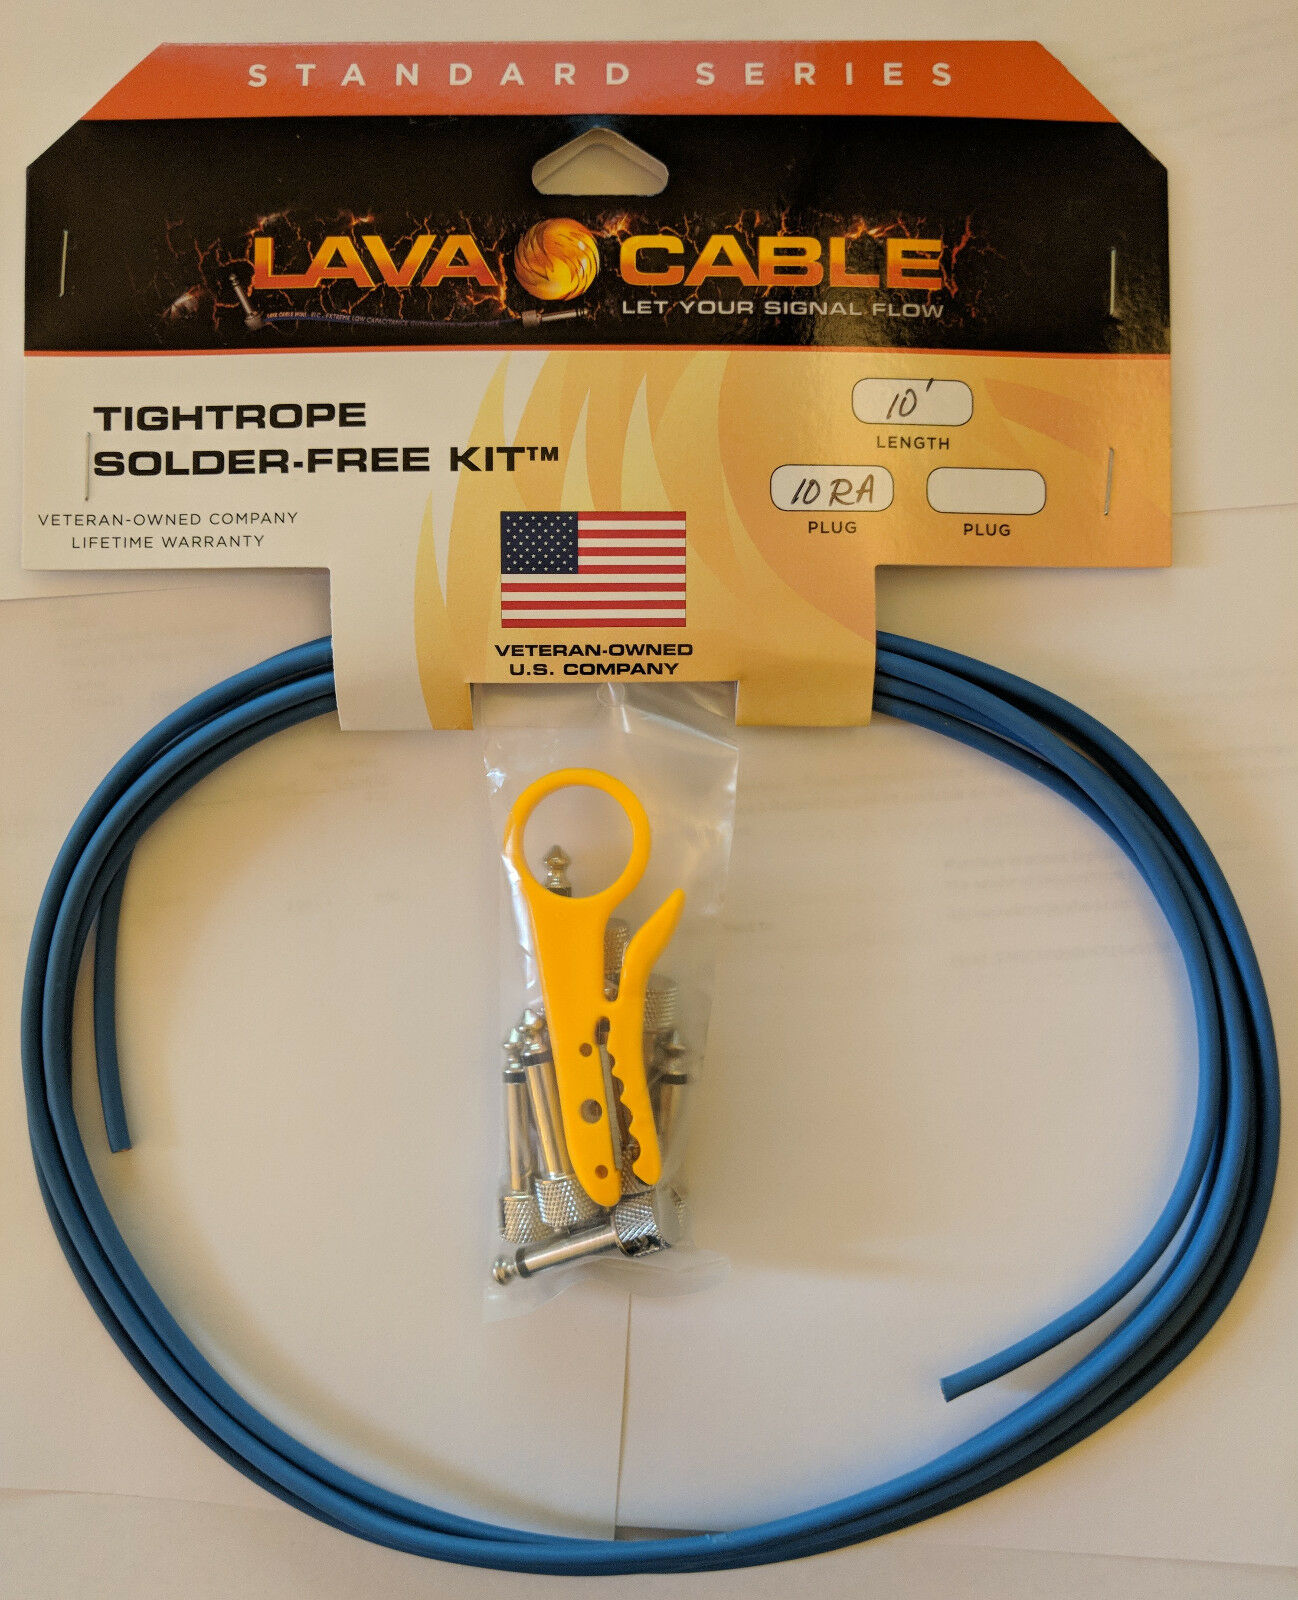 Lava DIY Solderless Cable TS Kits 10 RA Plugs + Stripper, 10 ft Cable - 5 colors